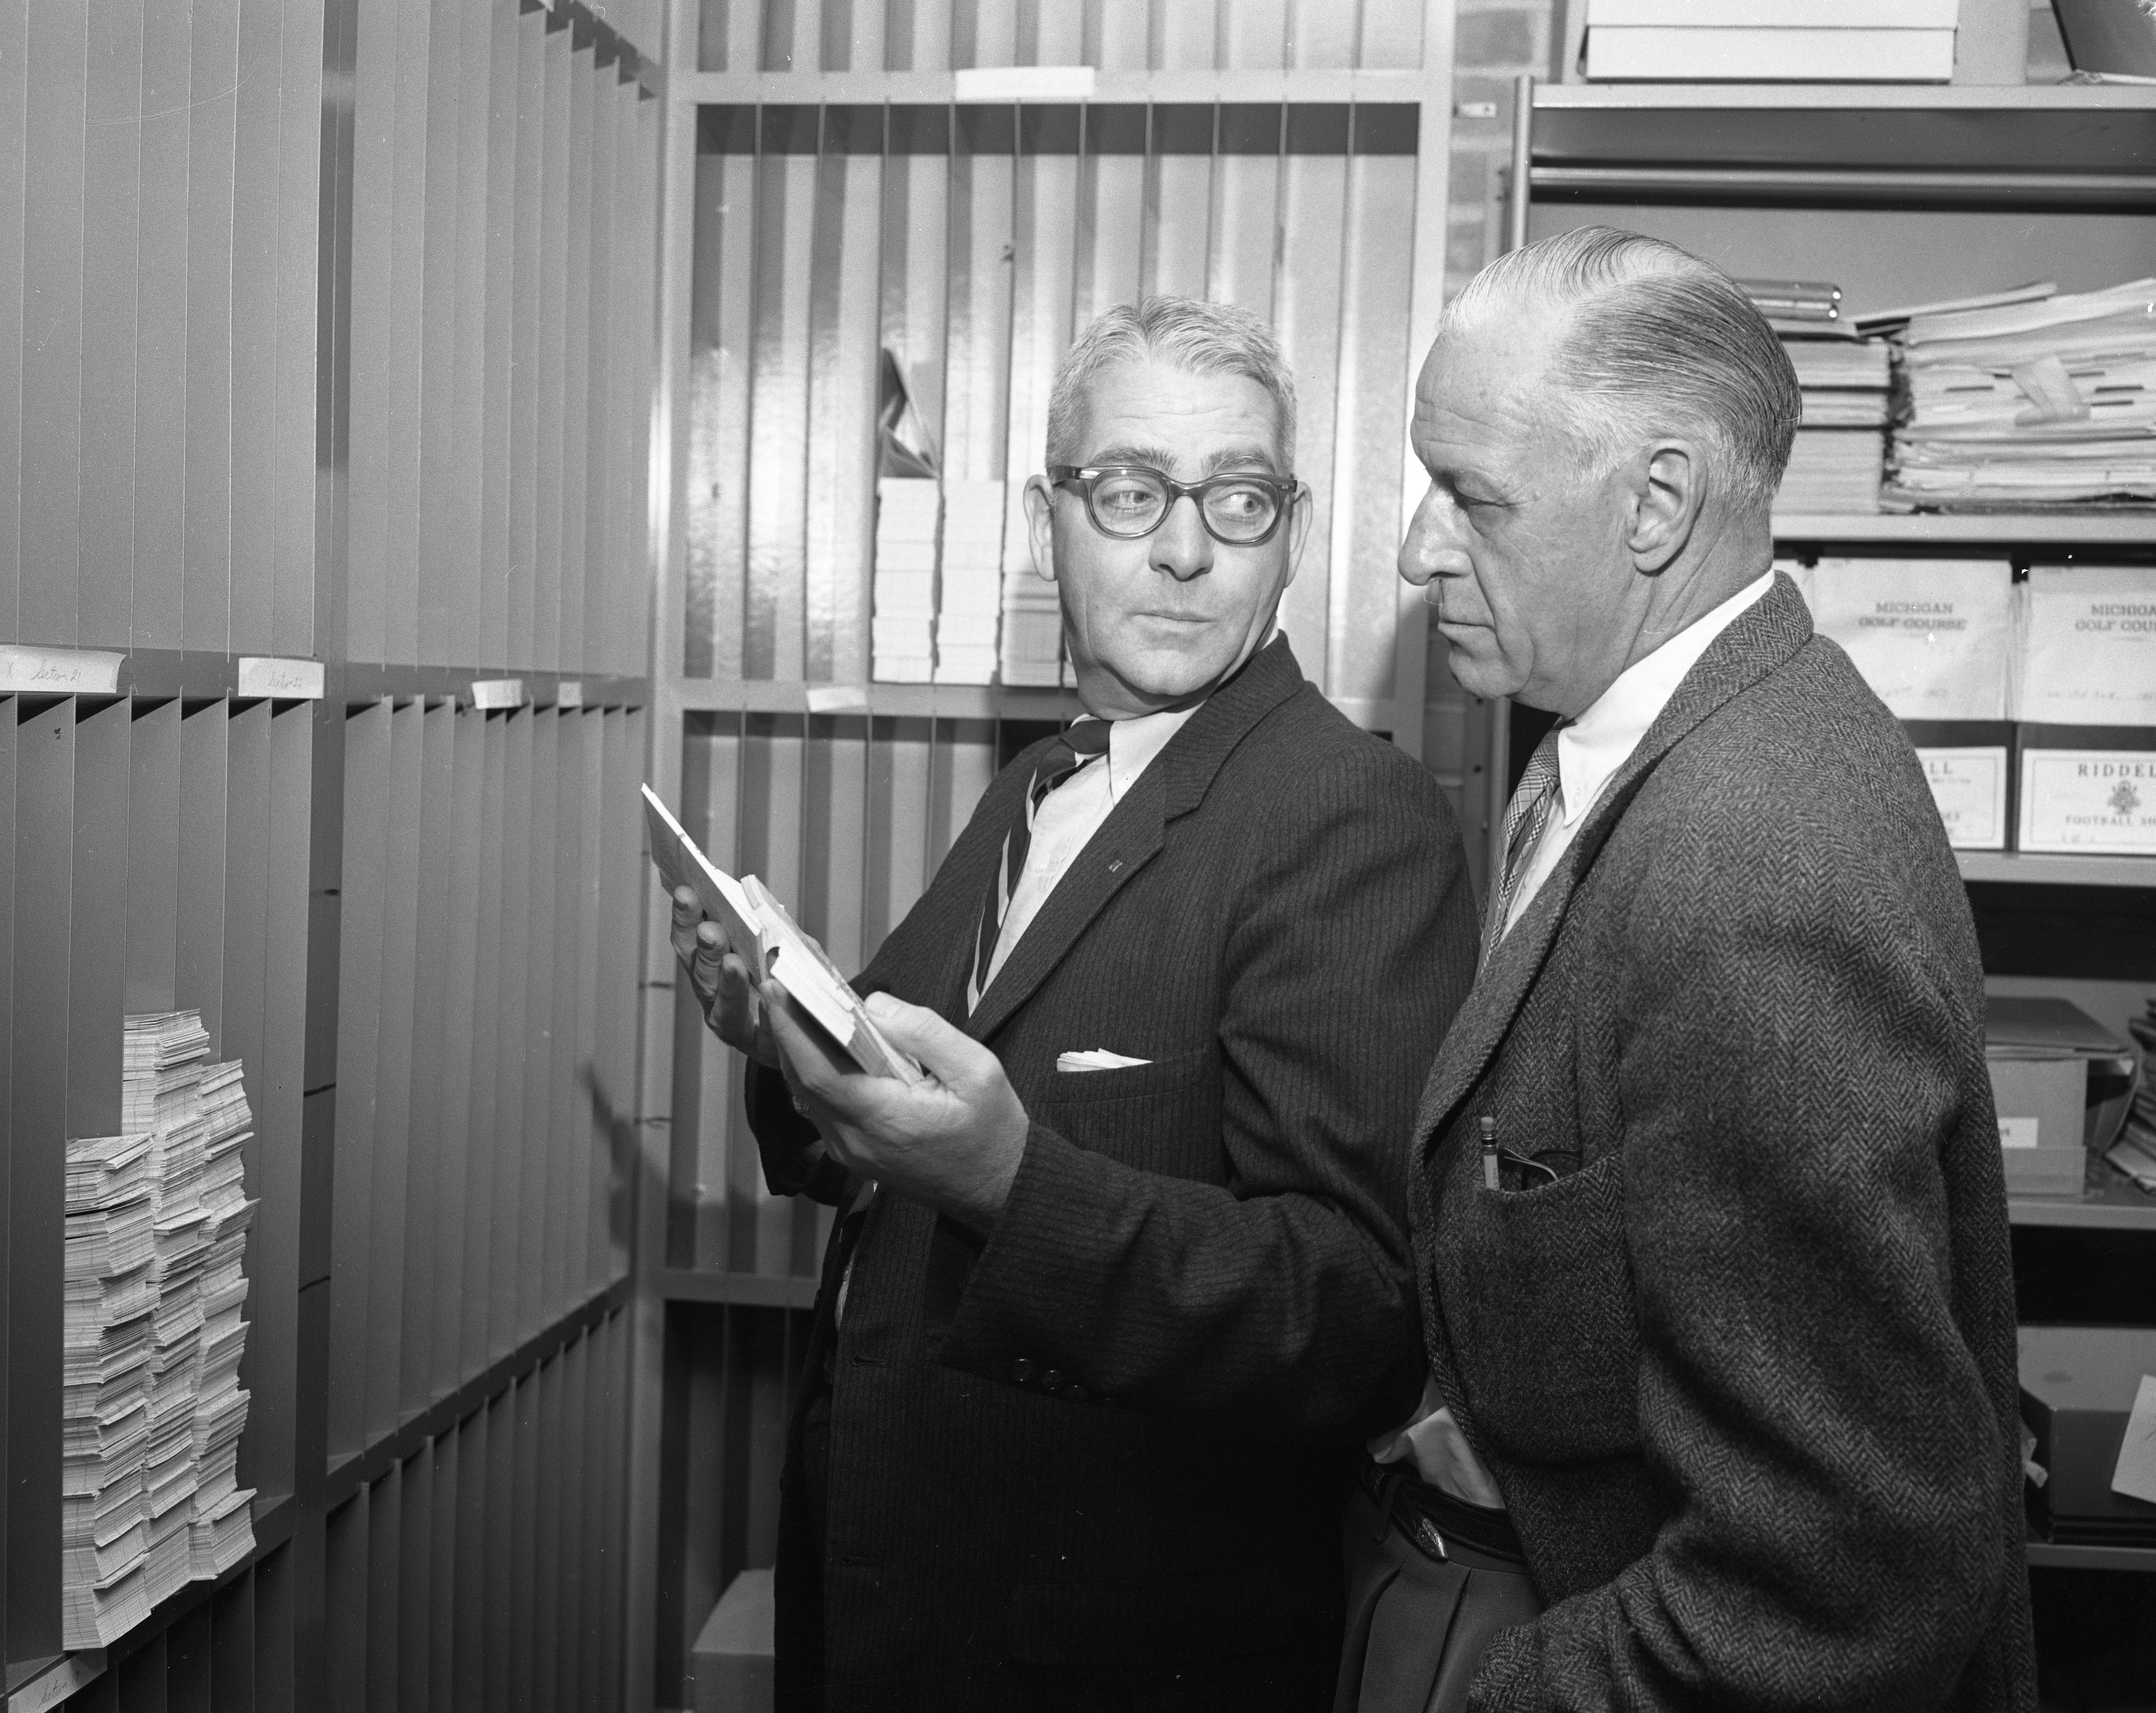 Don Weir and Fritz Crisler In University of Michigan Athletics Ticket Vault, October 1957 image